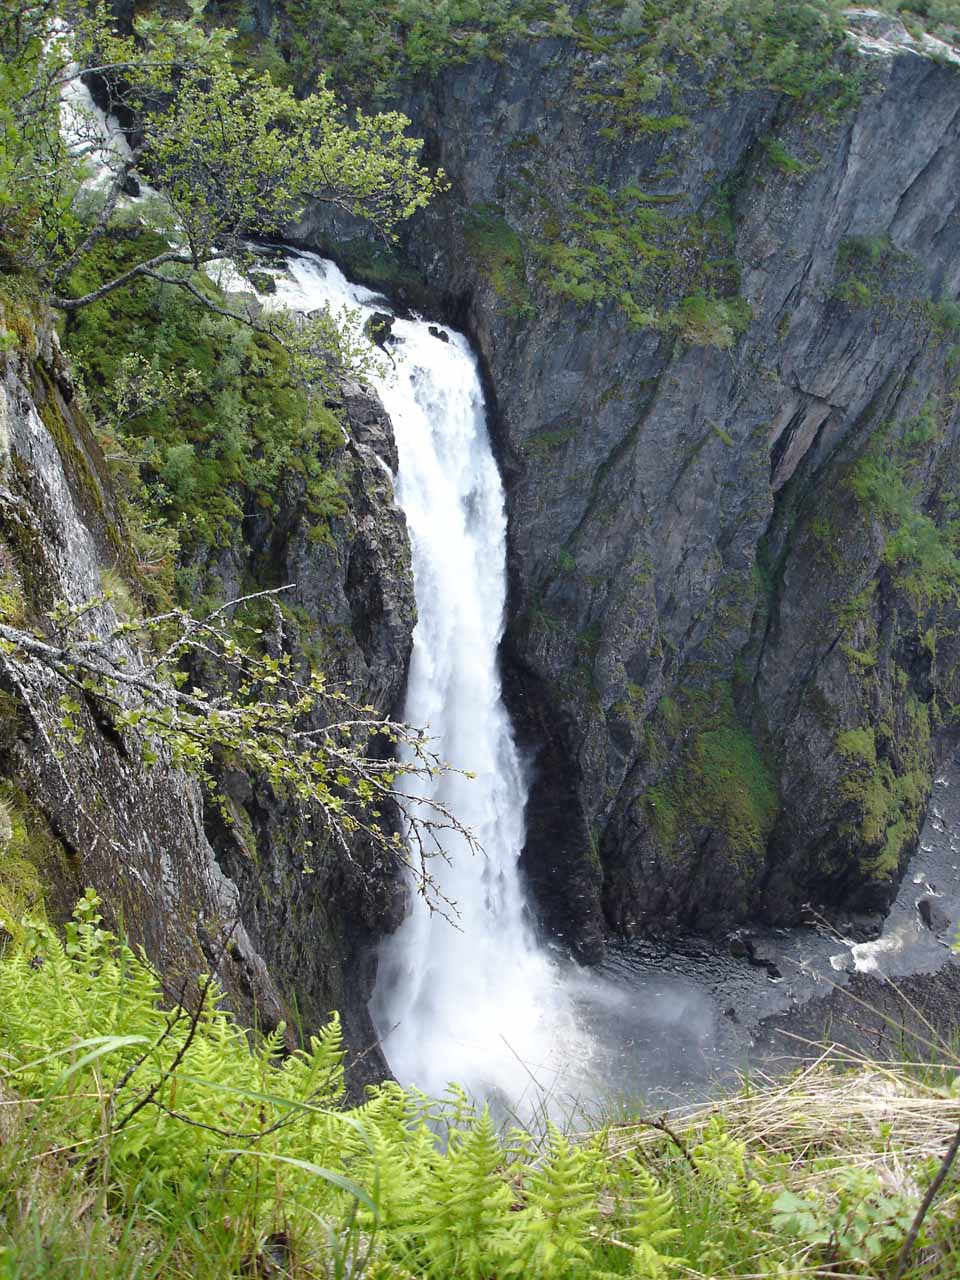 Looking right down at the main drop of Vøringsfossen